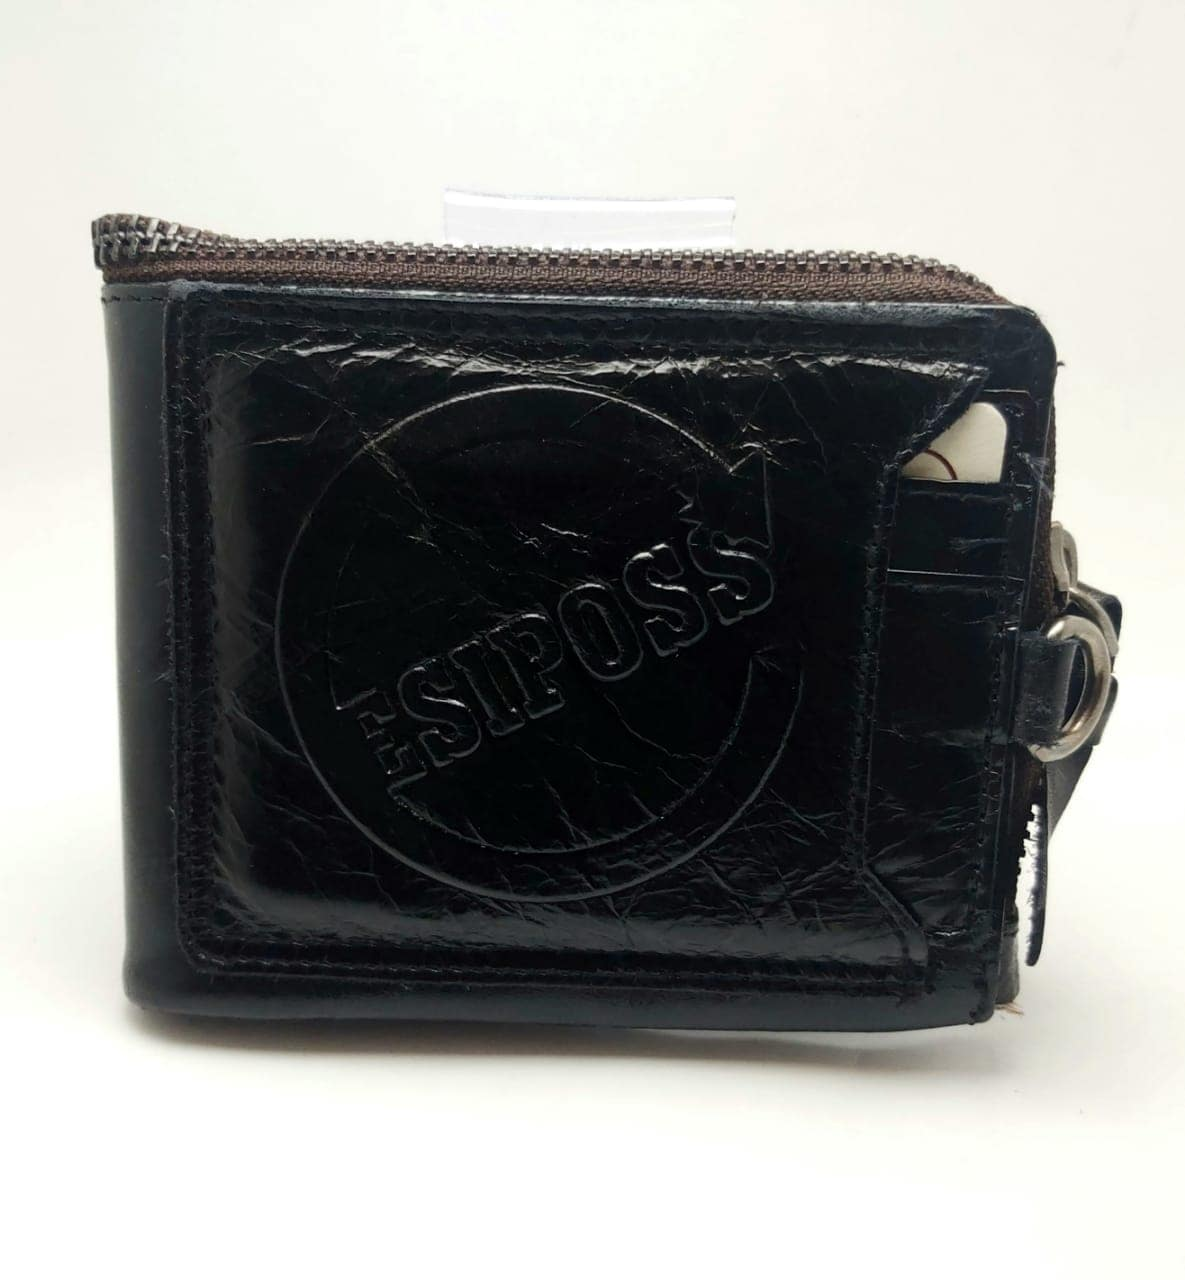 ESIPOSS Wallet EP01 Men Genuine Leather Men Purse Vintage With Zipper Coin Pocket Famous Brand Designer Wallets For Men Money Bag